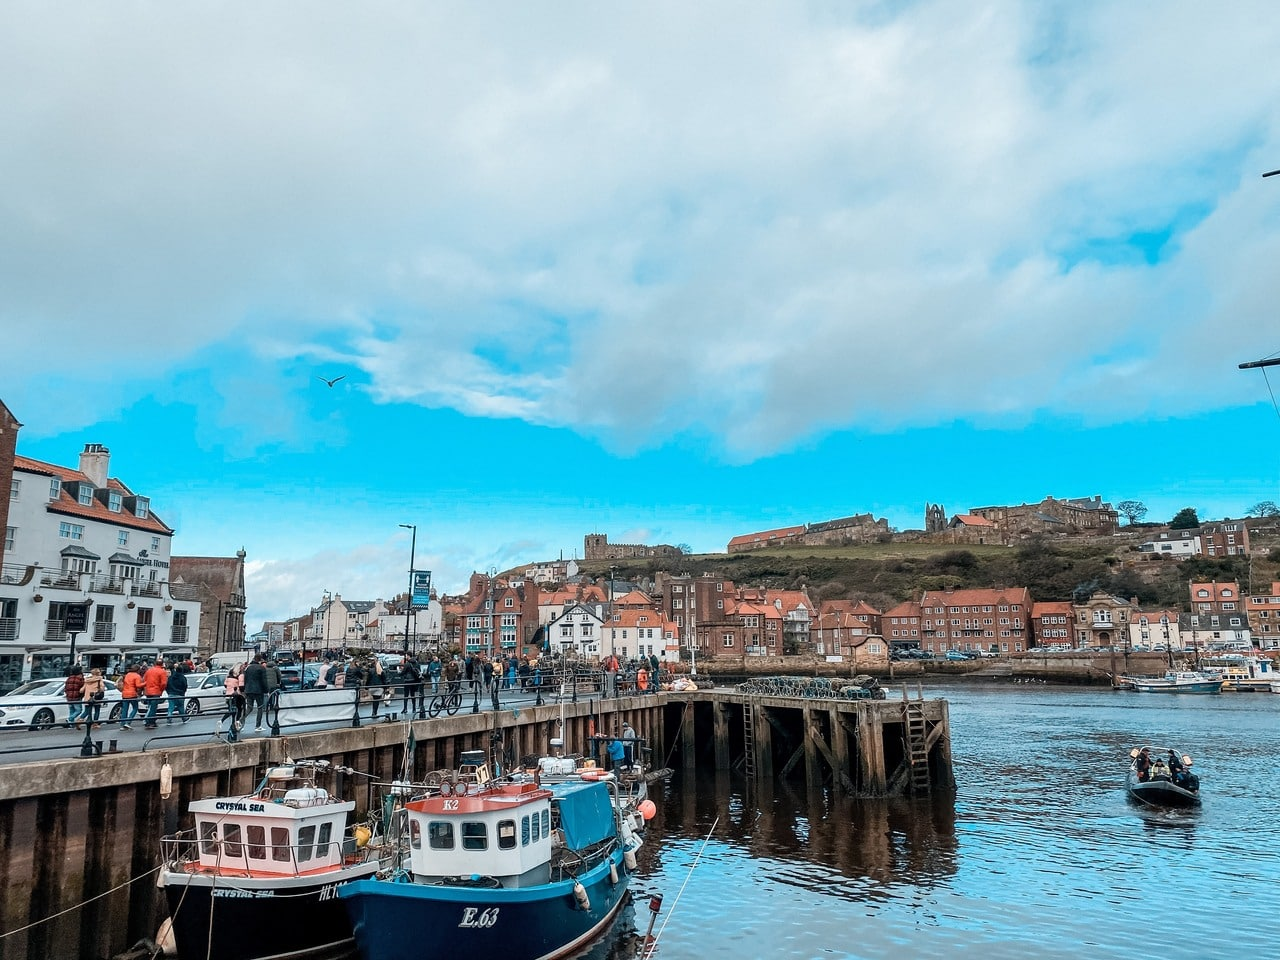 Boats in Whitby town centre on the North Yorkshire Coast, Yorkshire, England